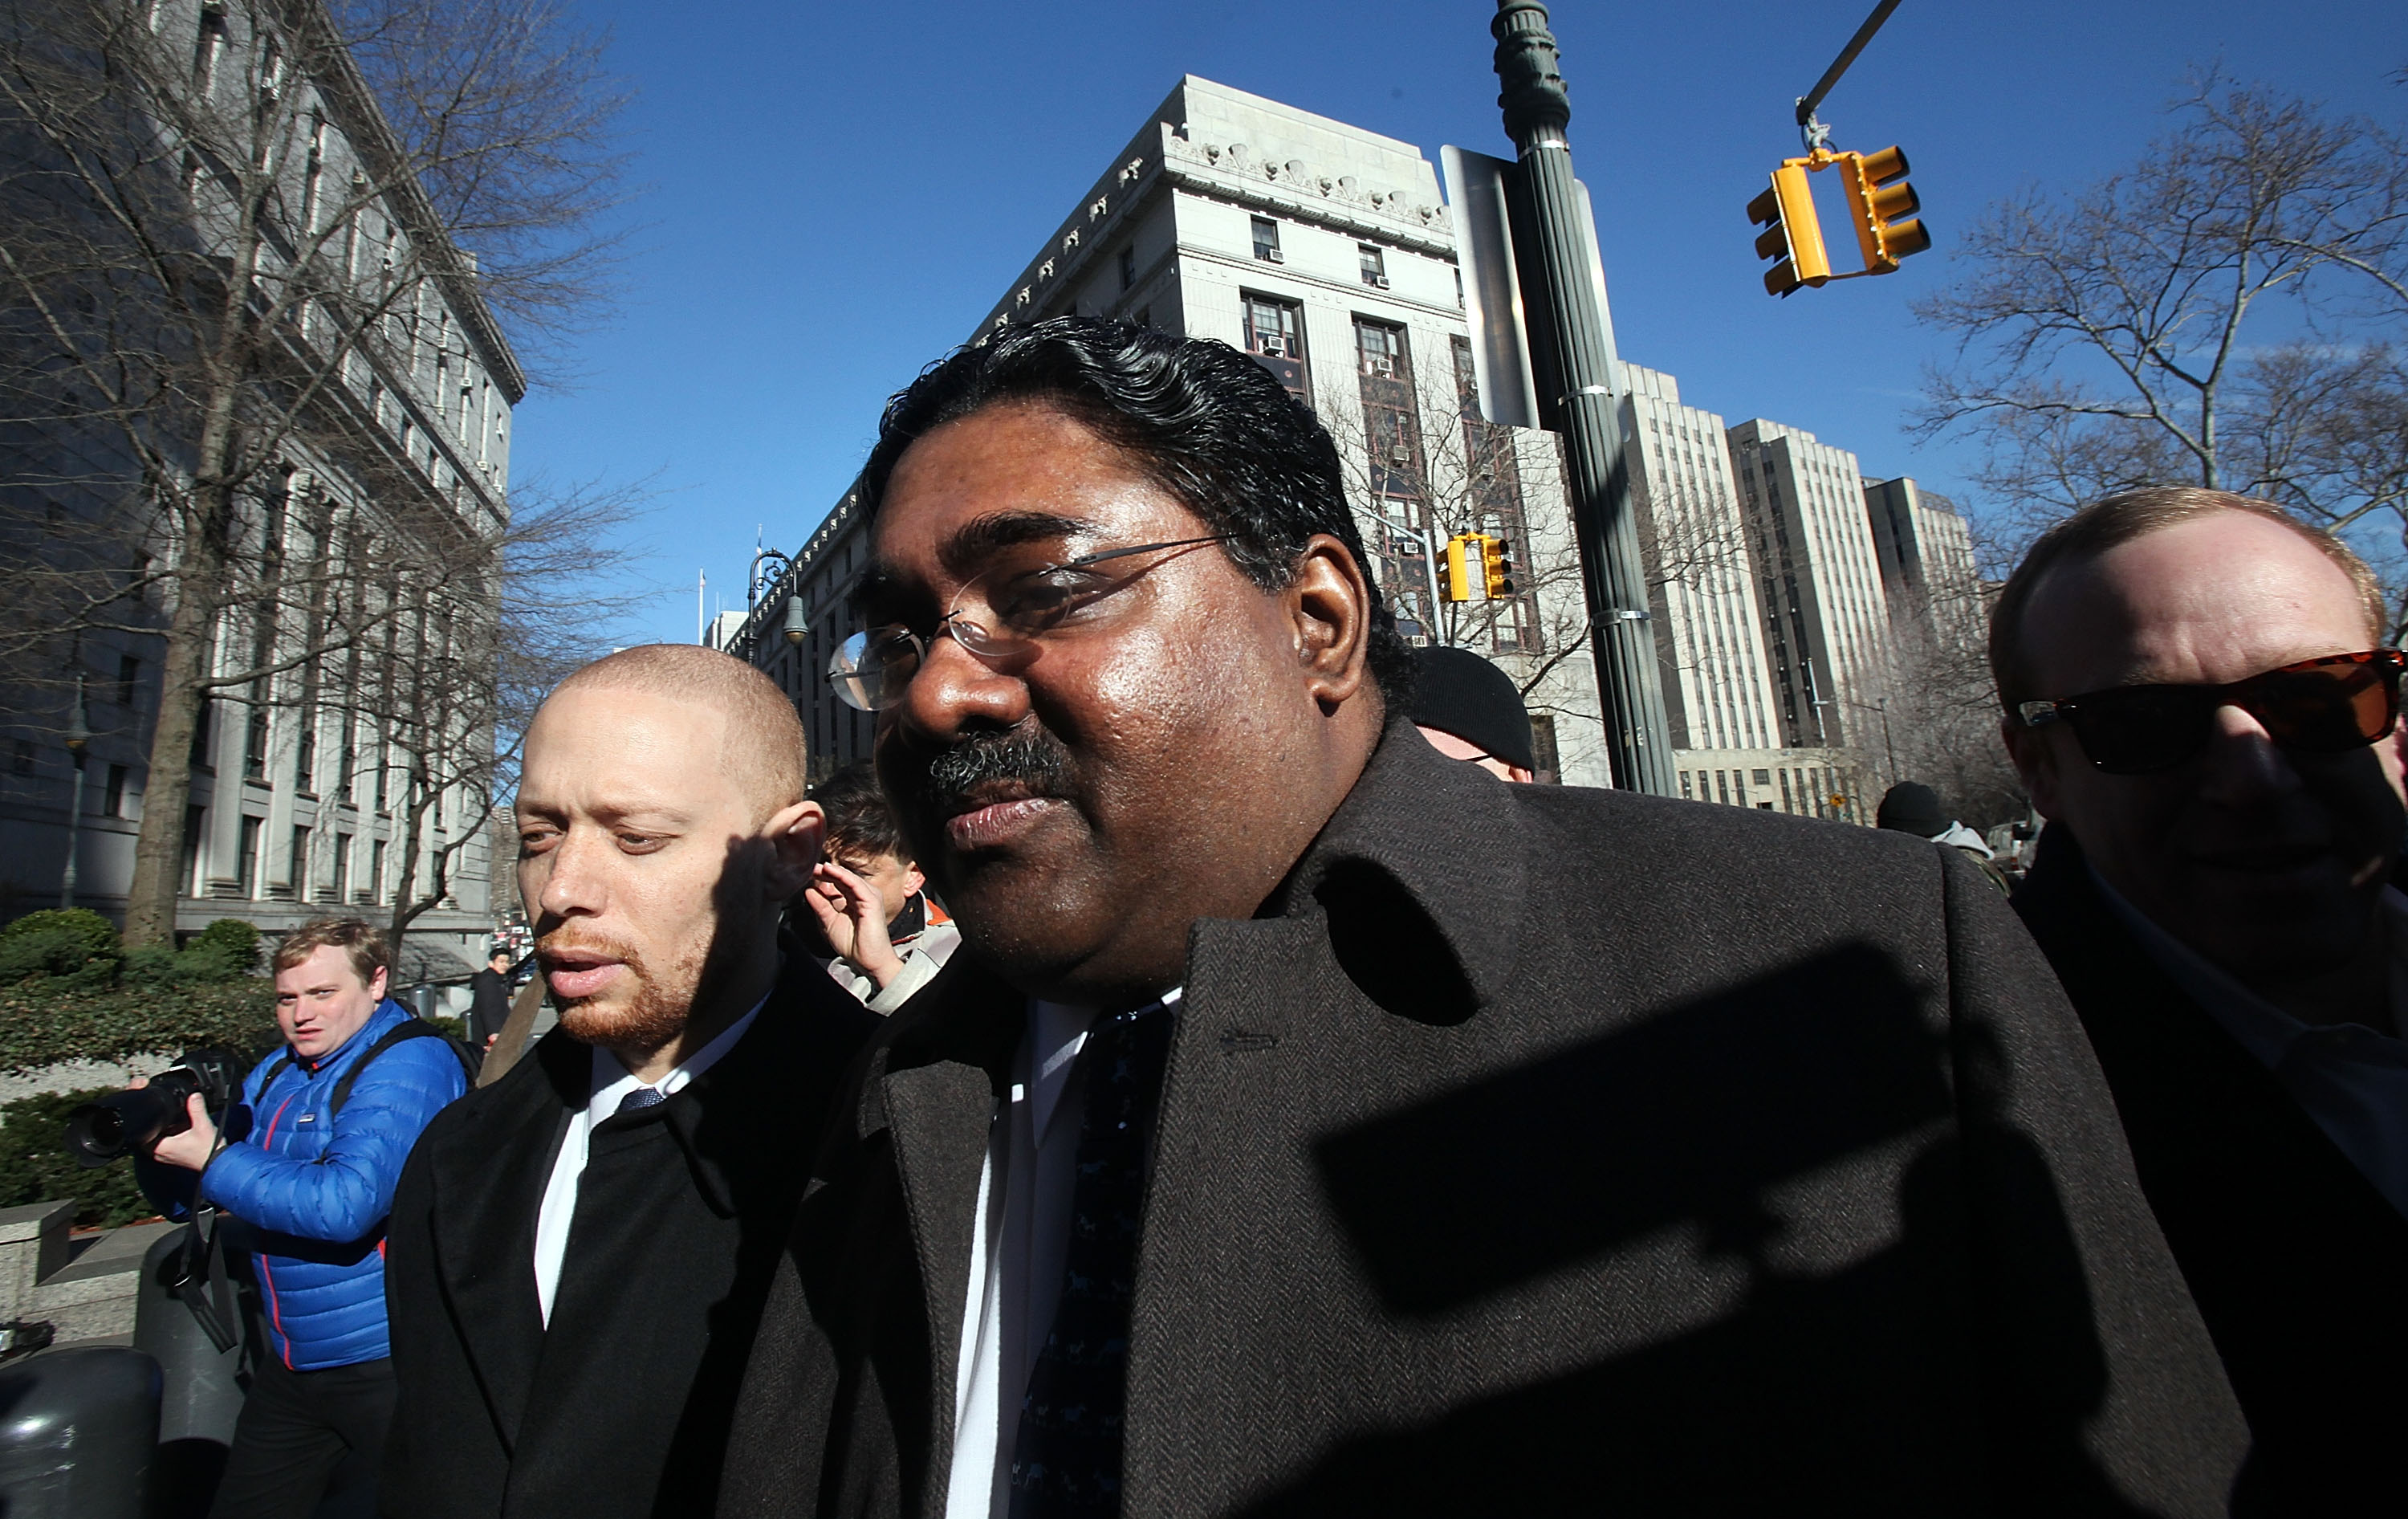 Billionaire Galleon Group hedge fund cofounder Raj Rajaratnam (C) enters Manhattan Federal Court at the start of his trial on insider trading charges March 8, 2011 in New York City. Prosecutors allege that Rajaratnam pocketed $45m by illegally trading on insider stock tips. (Photo by Mario Tama/Getty Images)